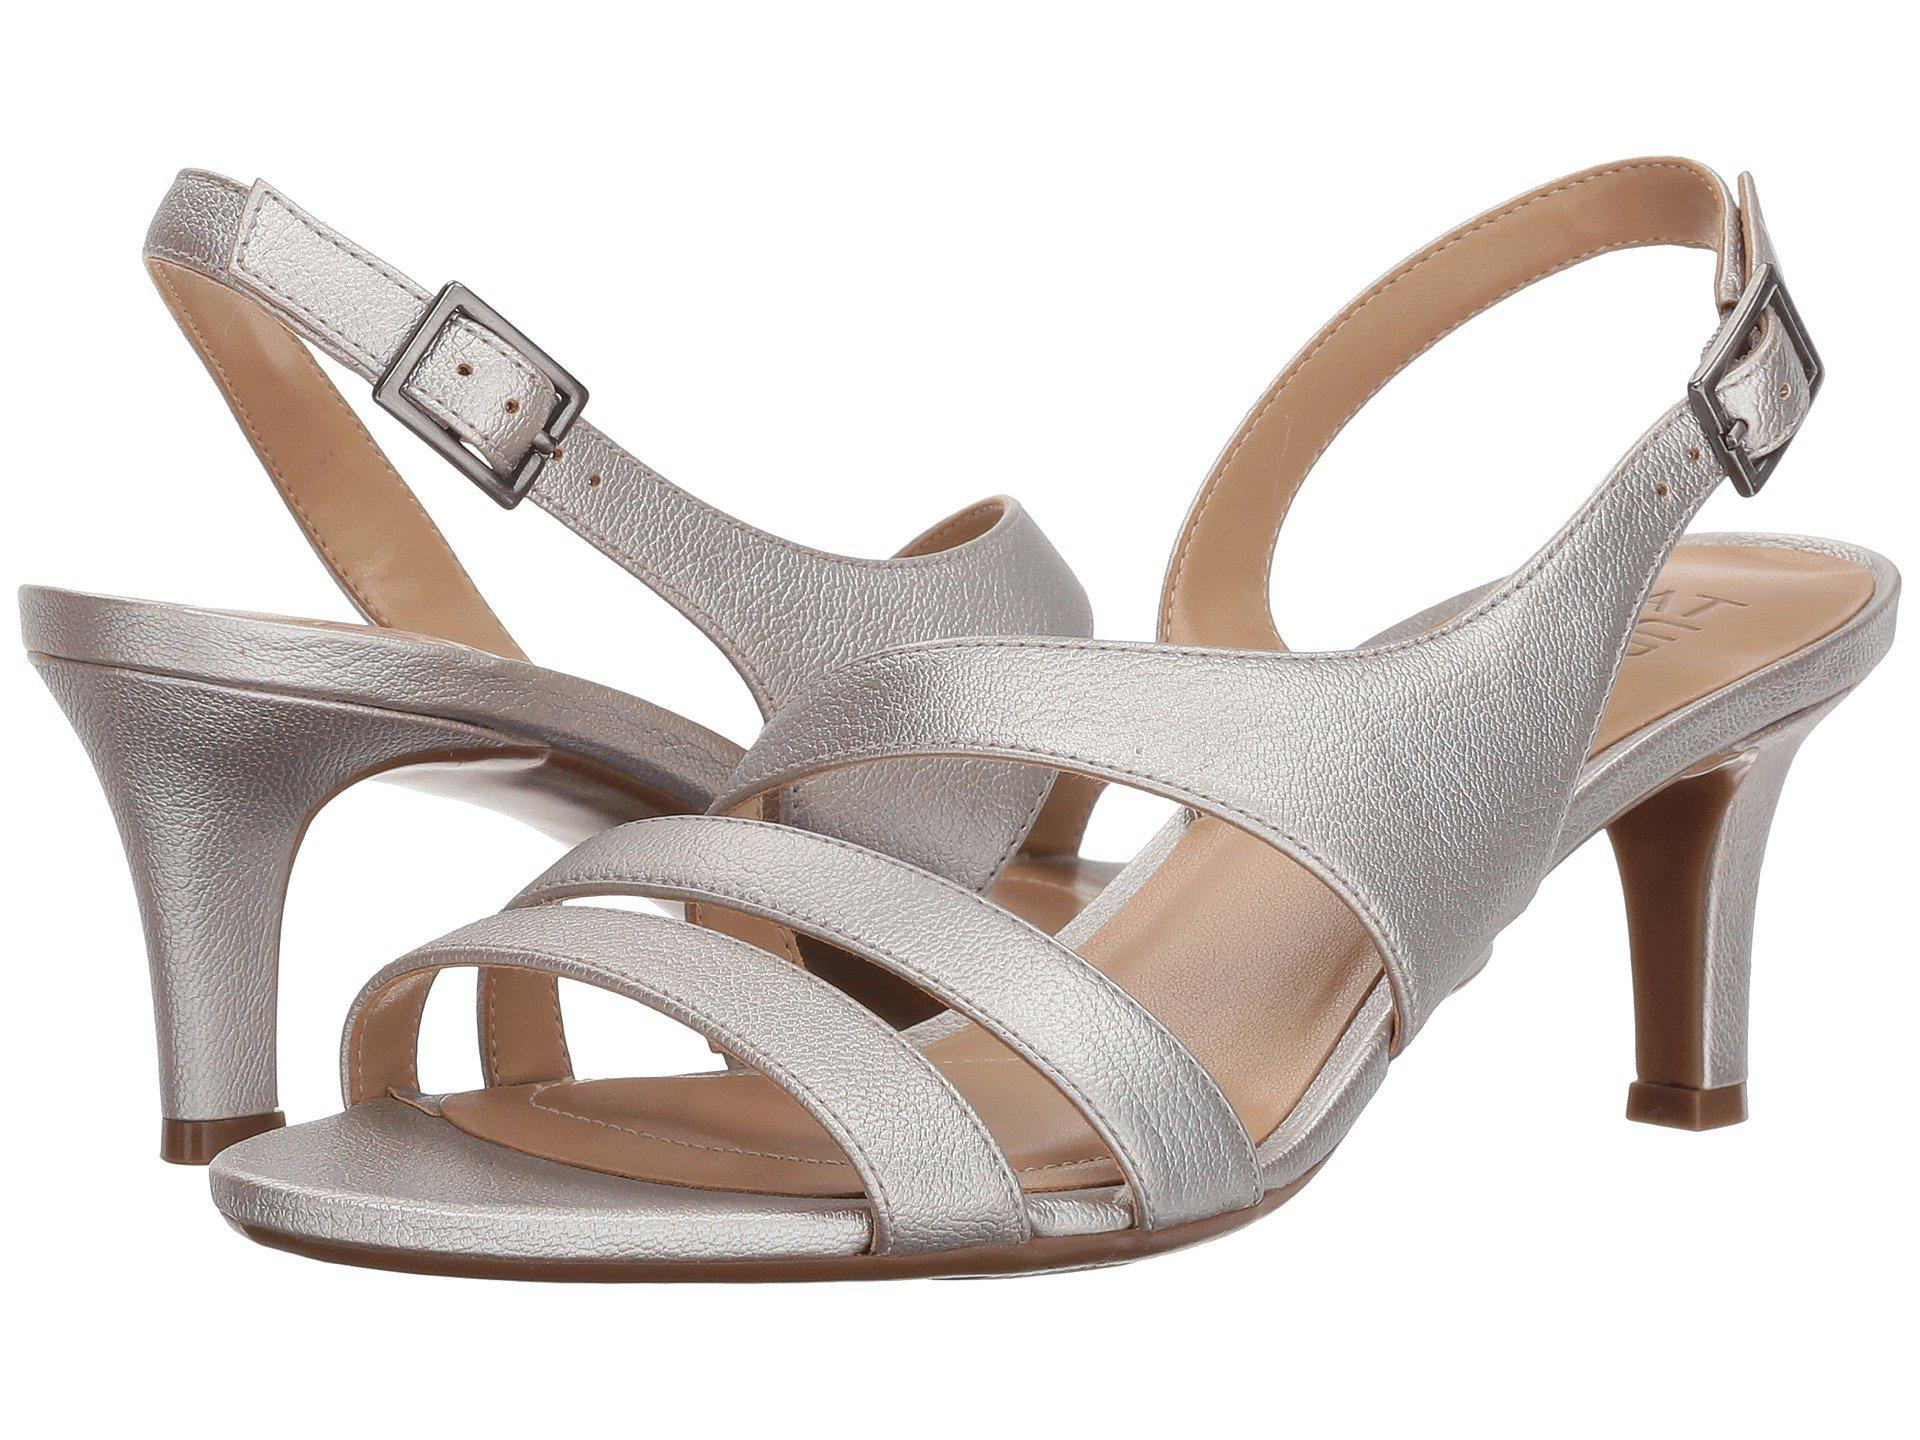 1e706a9822db Lyst - Naturalizer Taimi (silver Pearl Grid) High Heels in Metallic